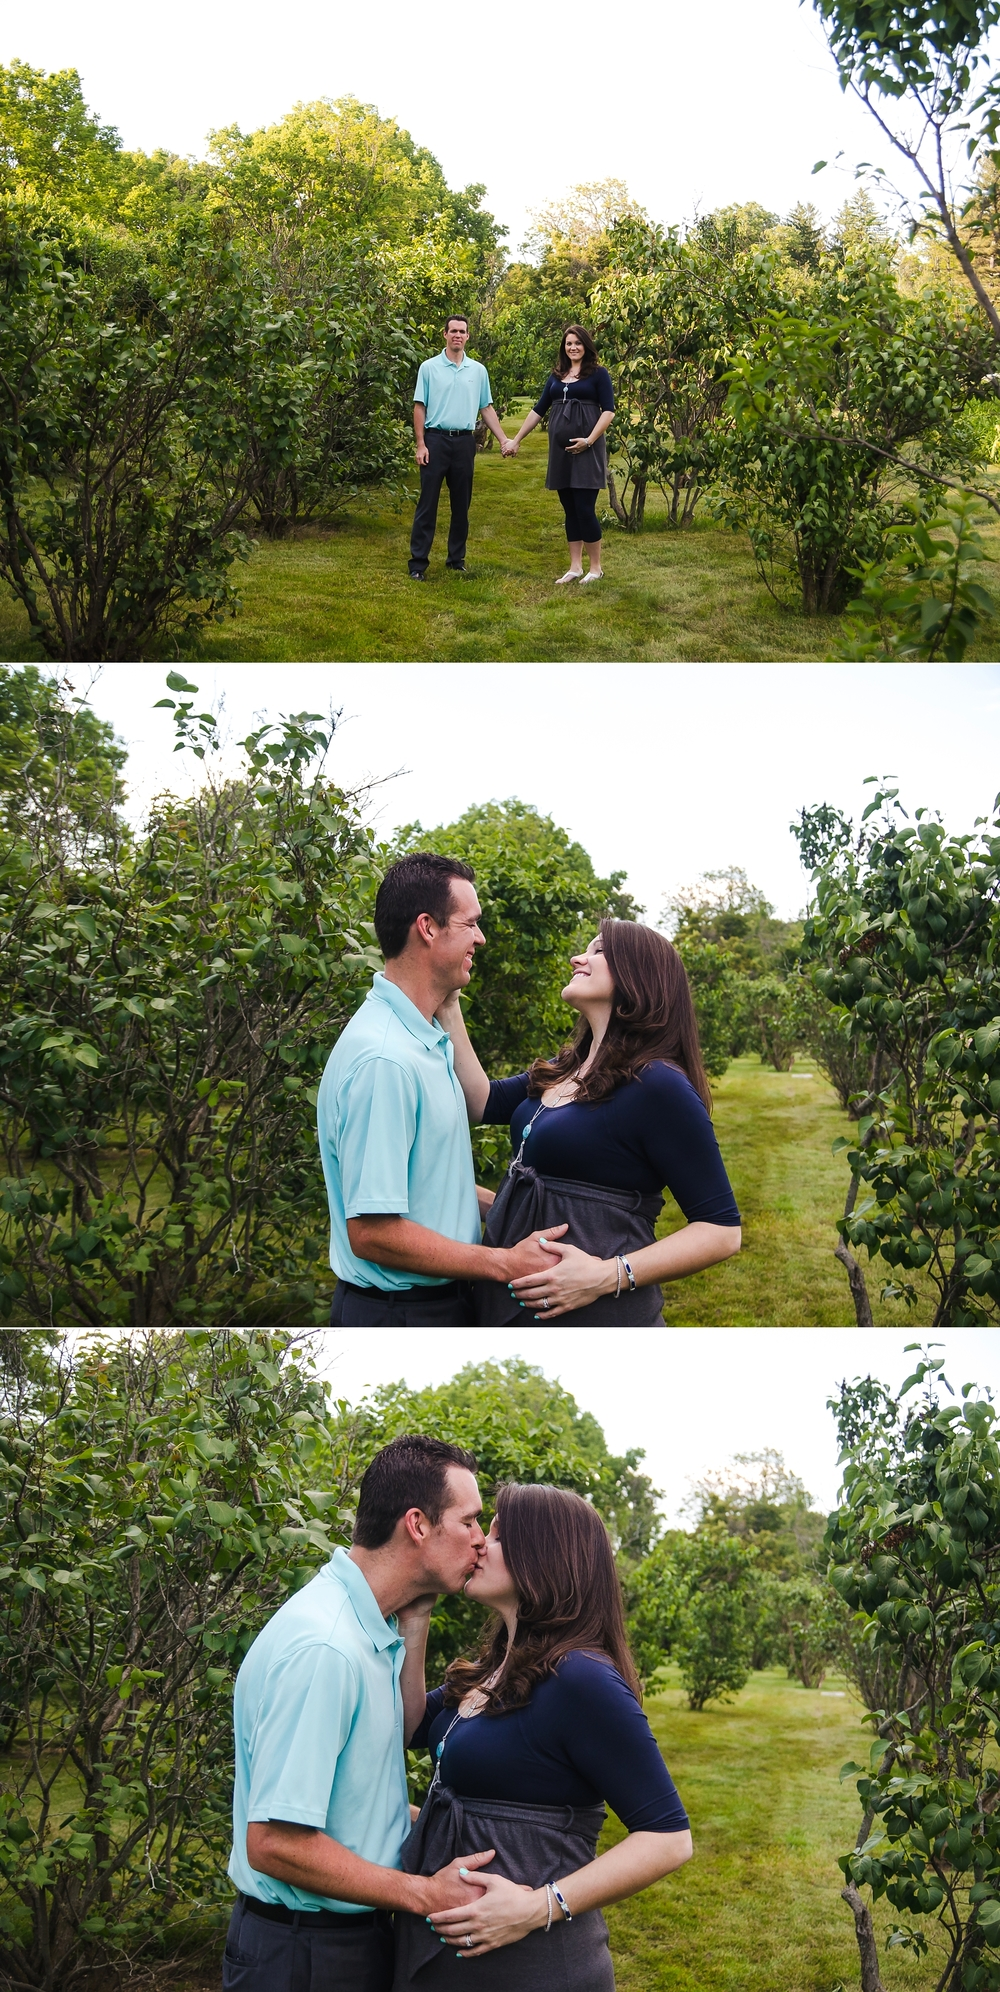 Mom and dad have maternity portraits taken in an Indianapolis garden.